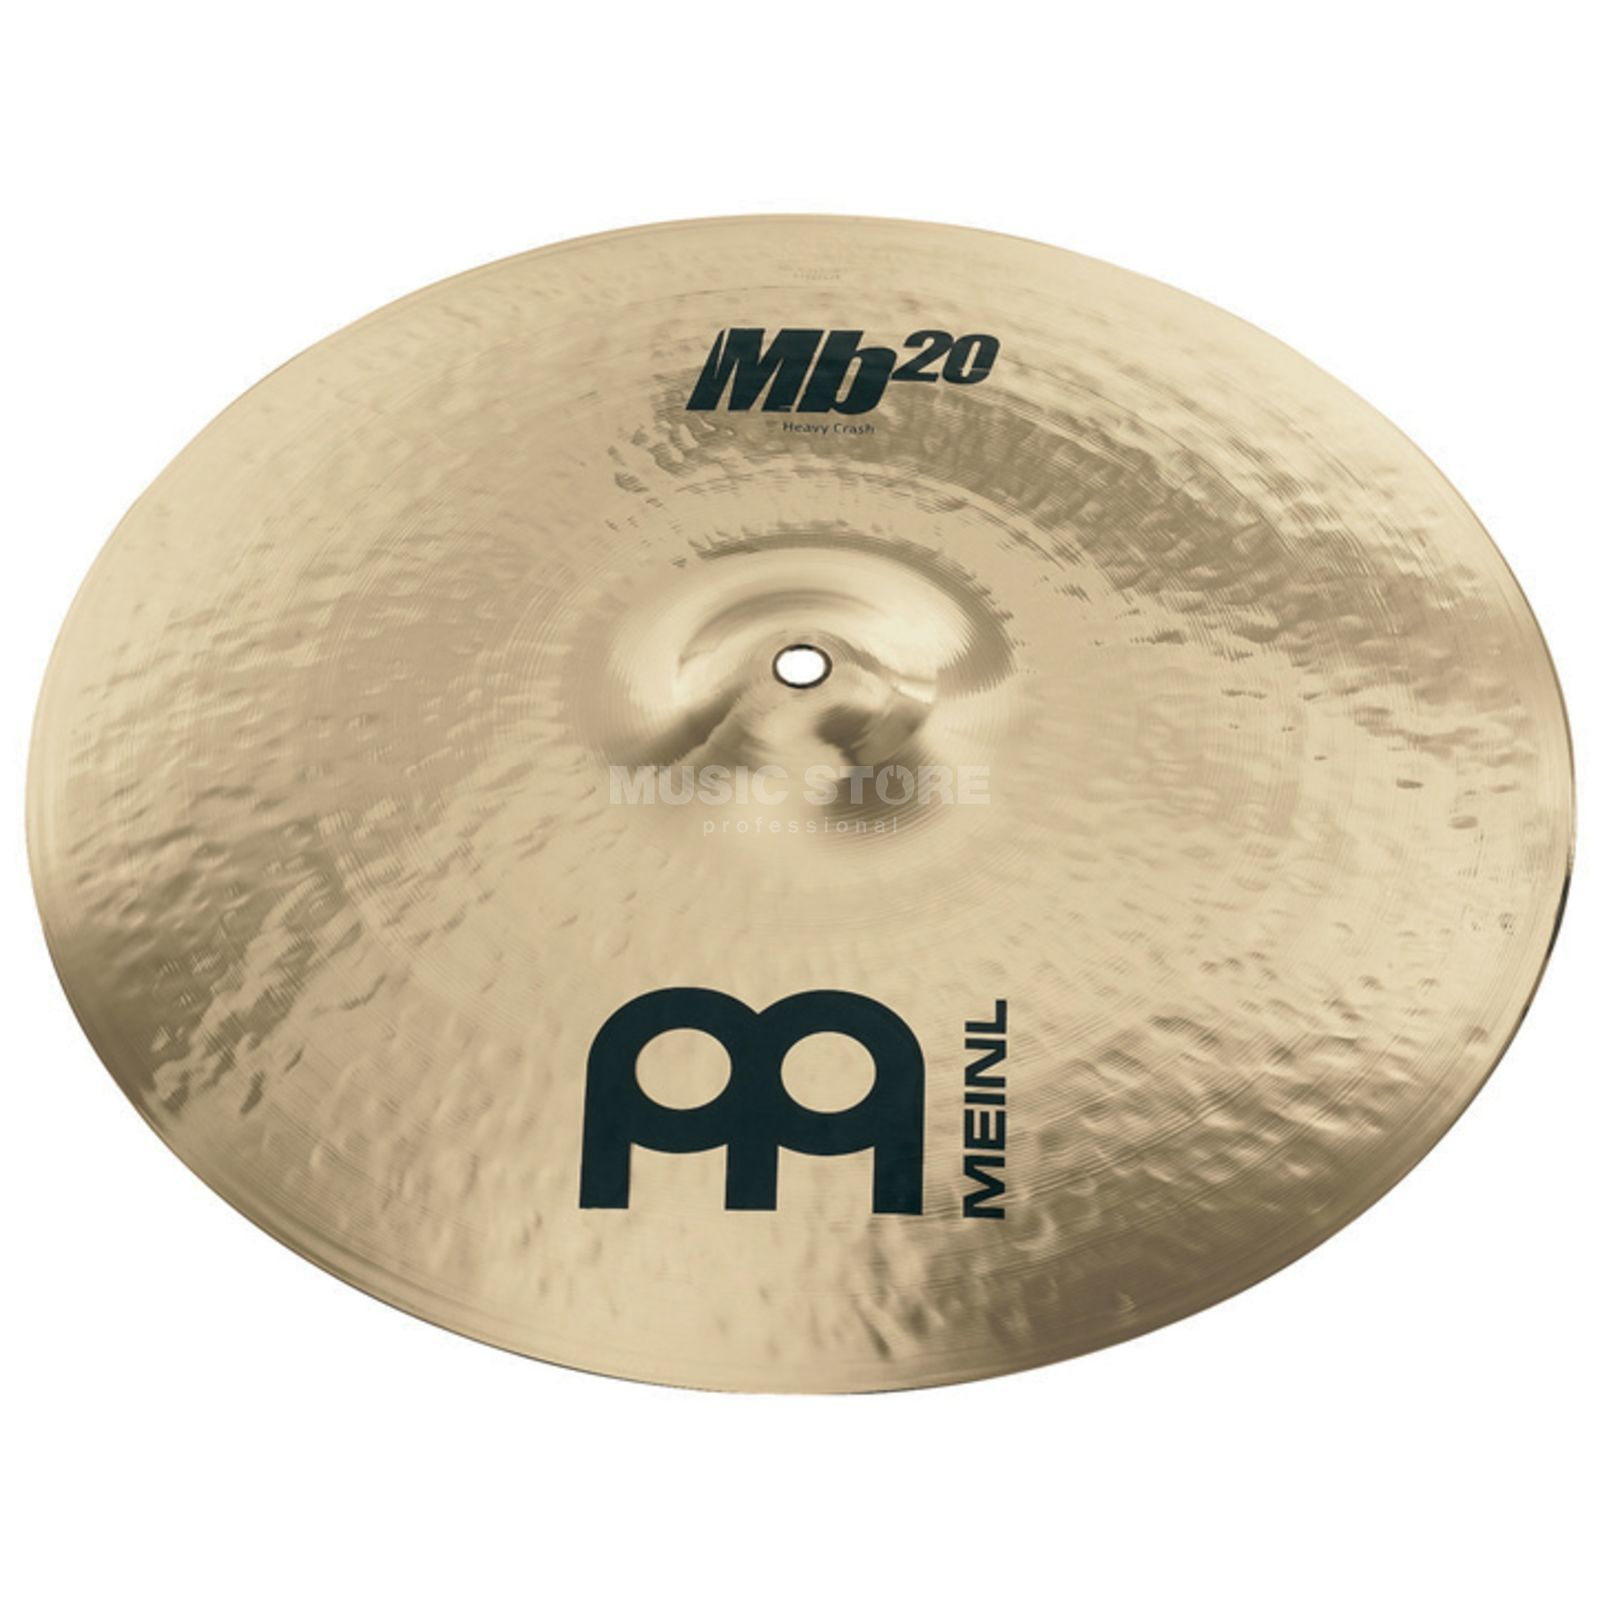 "Meinl MB20 Heavy Crash 16"" MB20-16HC-B, finition brillante Image du produit"